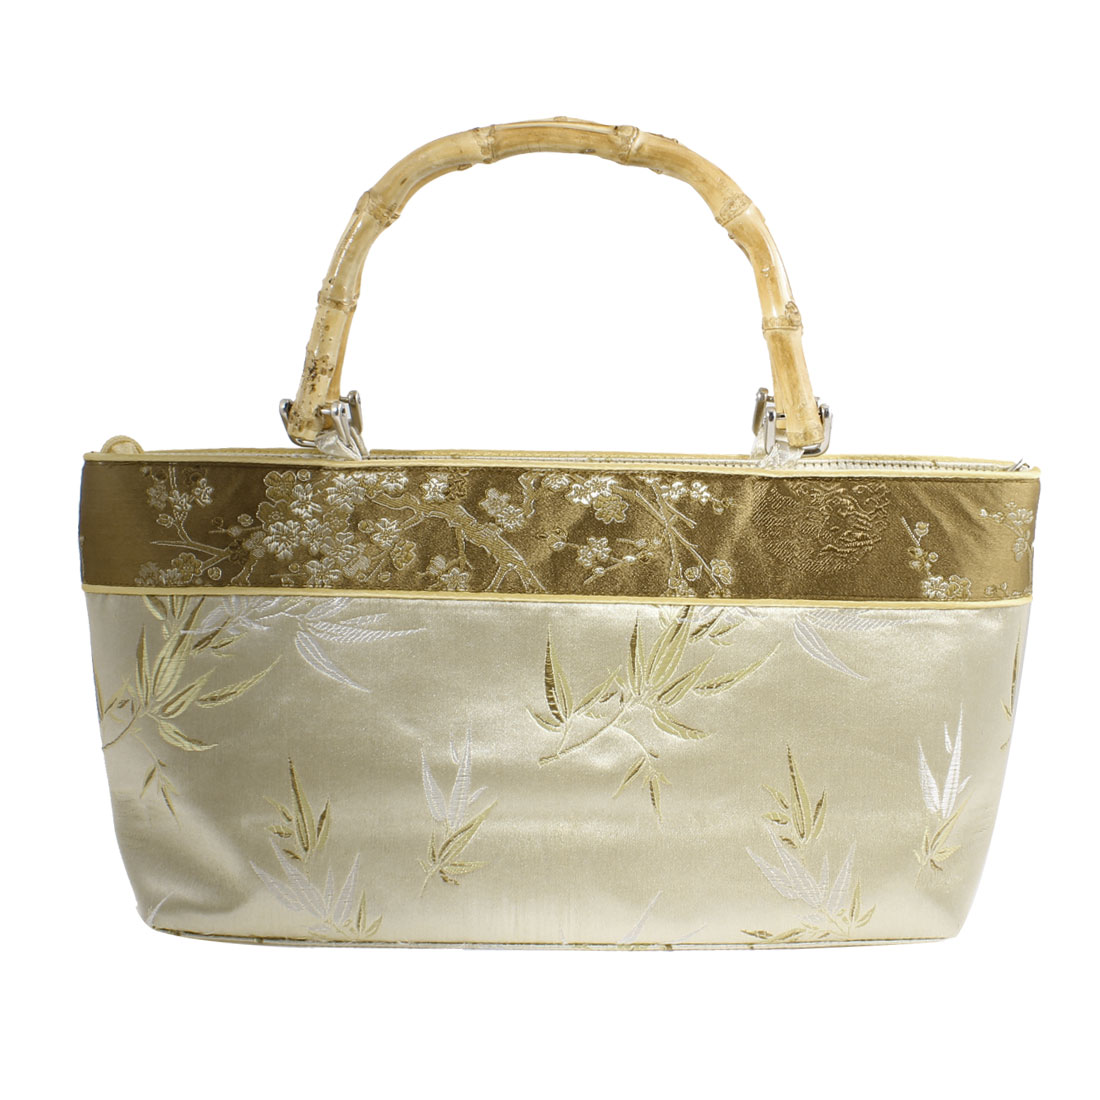 Chinese Beige Brown Embroider Bamboo Pattern Pouch Handbag for Ladies